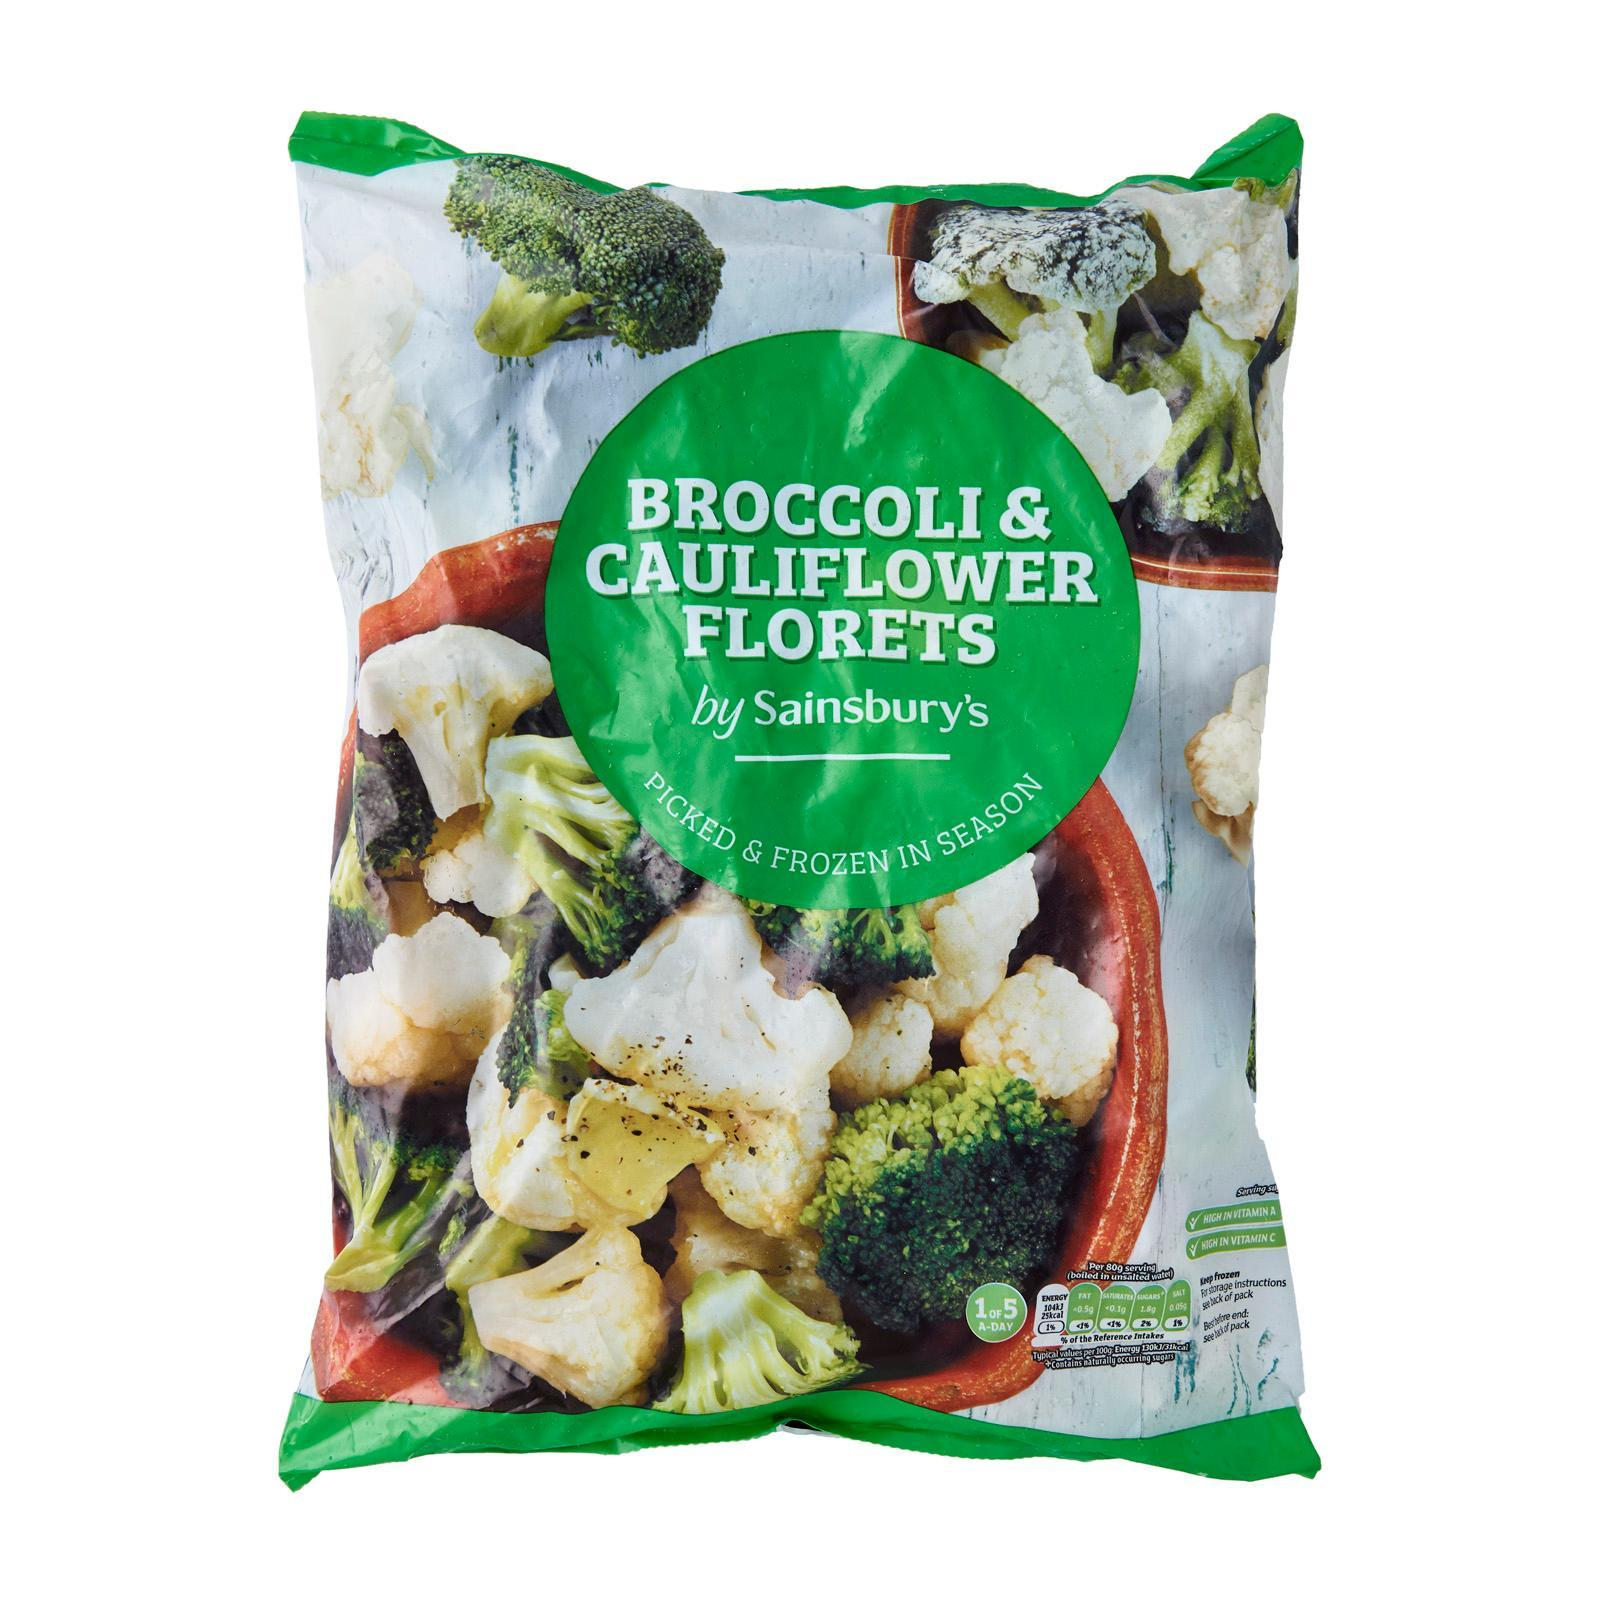 Sainsbury's Mixed Broccoli And Cauliflower Florets - Frozen